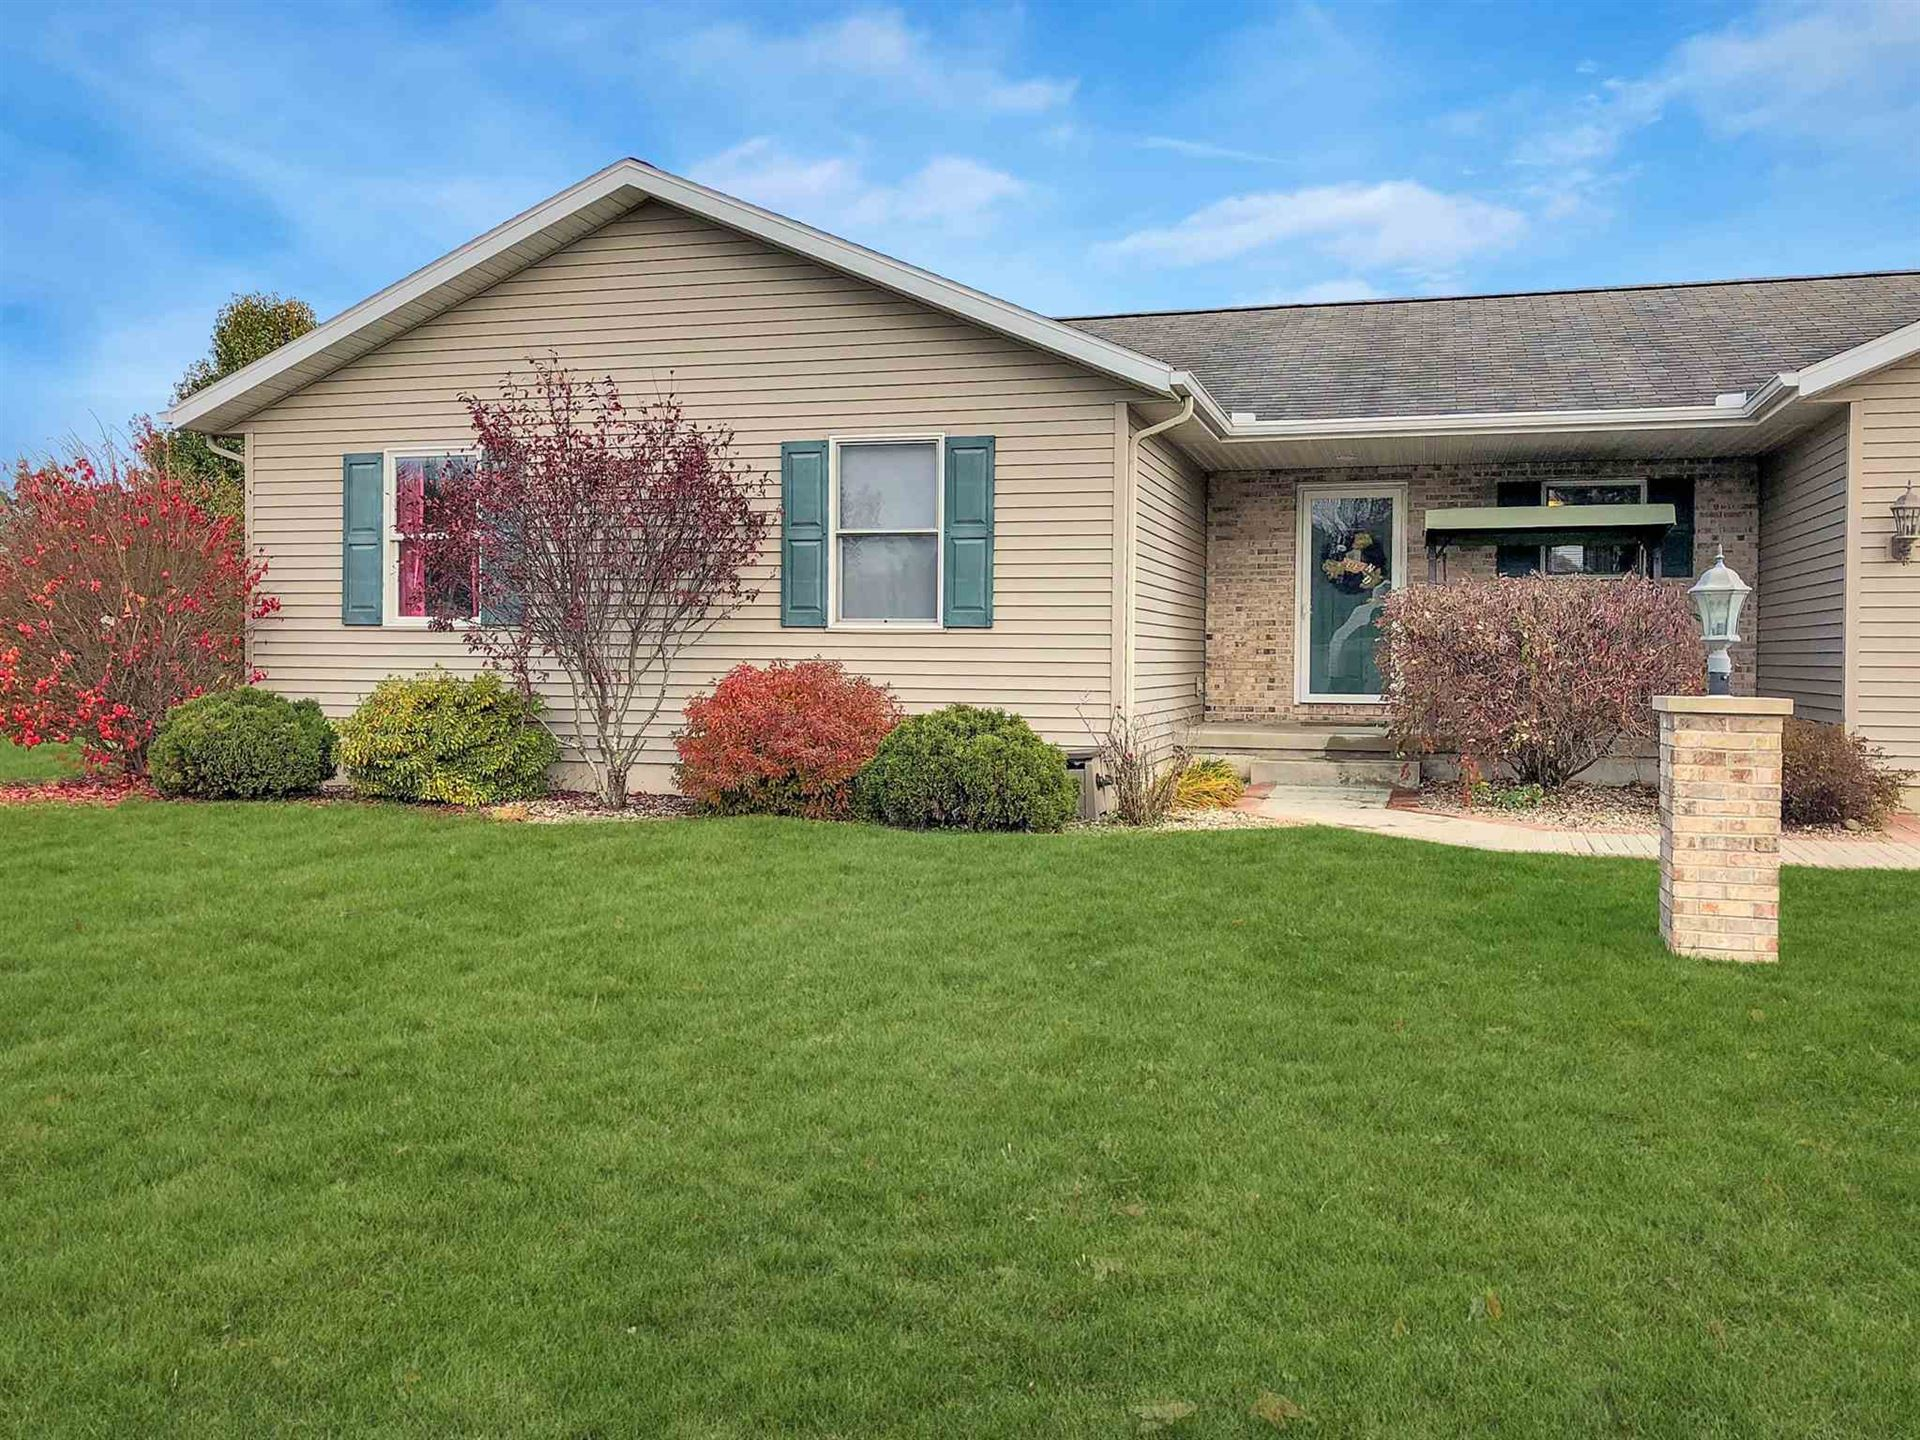 Photo of 306 Alexis Drive, Milford, IN 46542 (MLS # 201950758)